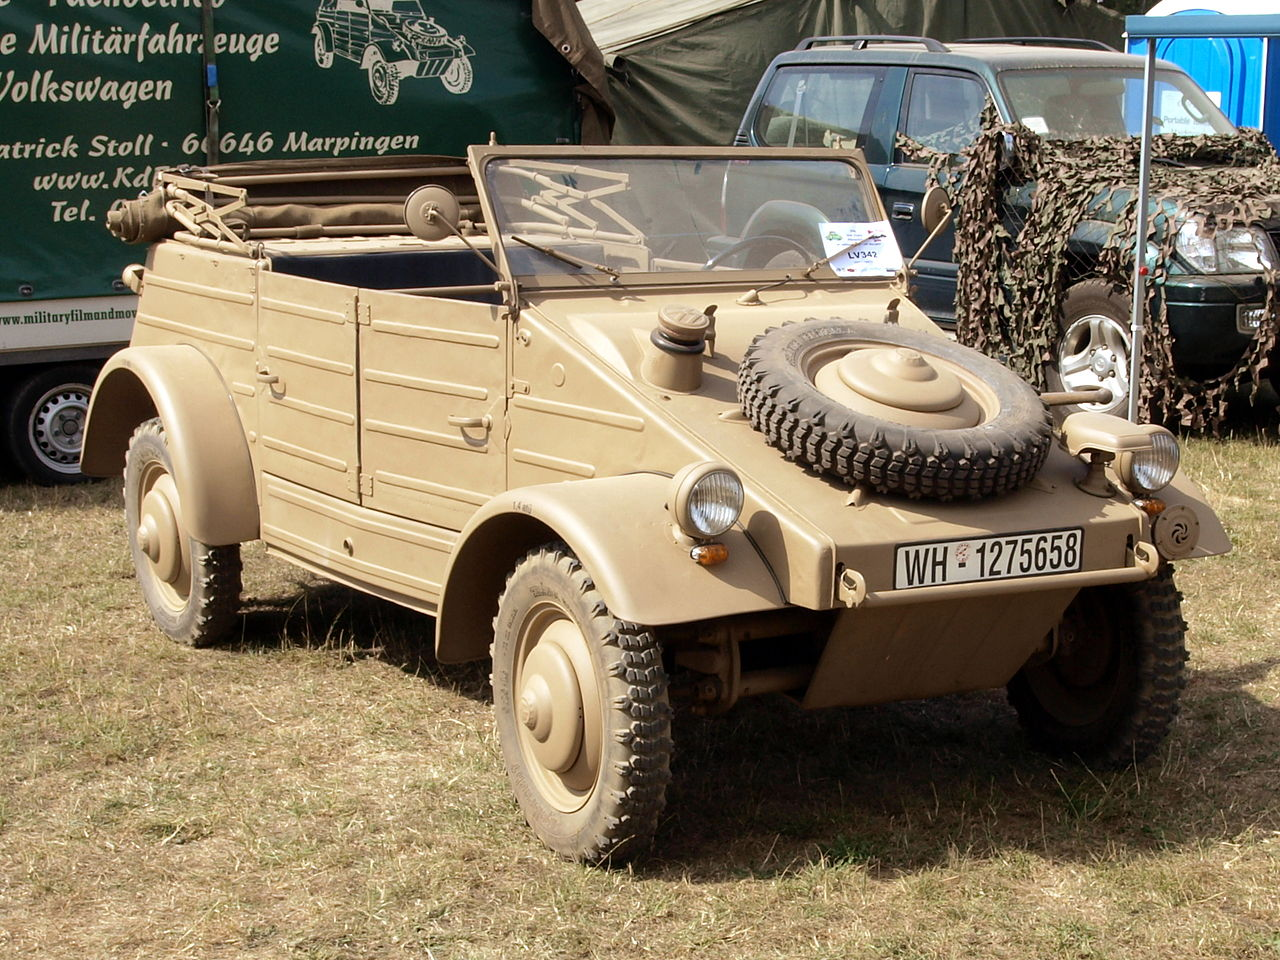 https://upload.wikimedia.org/wikipedia/commons/thumb/d/d8/VW_Kubelwagen_Type_82_%281943%29_%28owner_Claude_Thill%29.JPG/1280px-VW_Kubelwagen_Type_82_%281943%29_%28owner_Claude_Thill%29.JPG